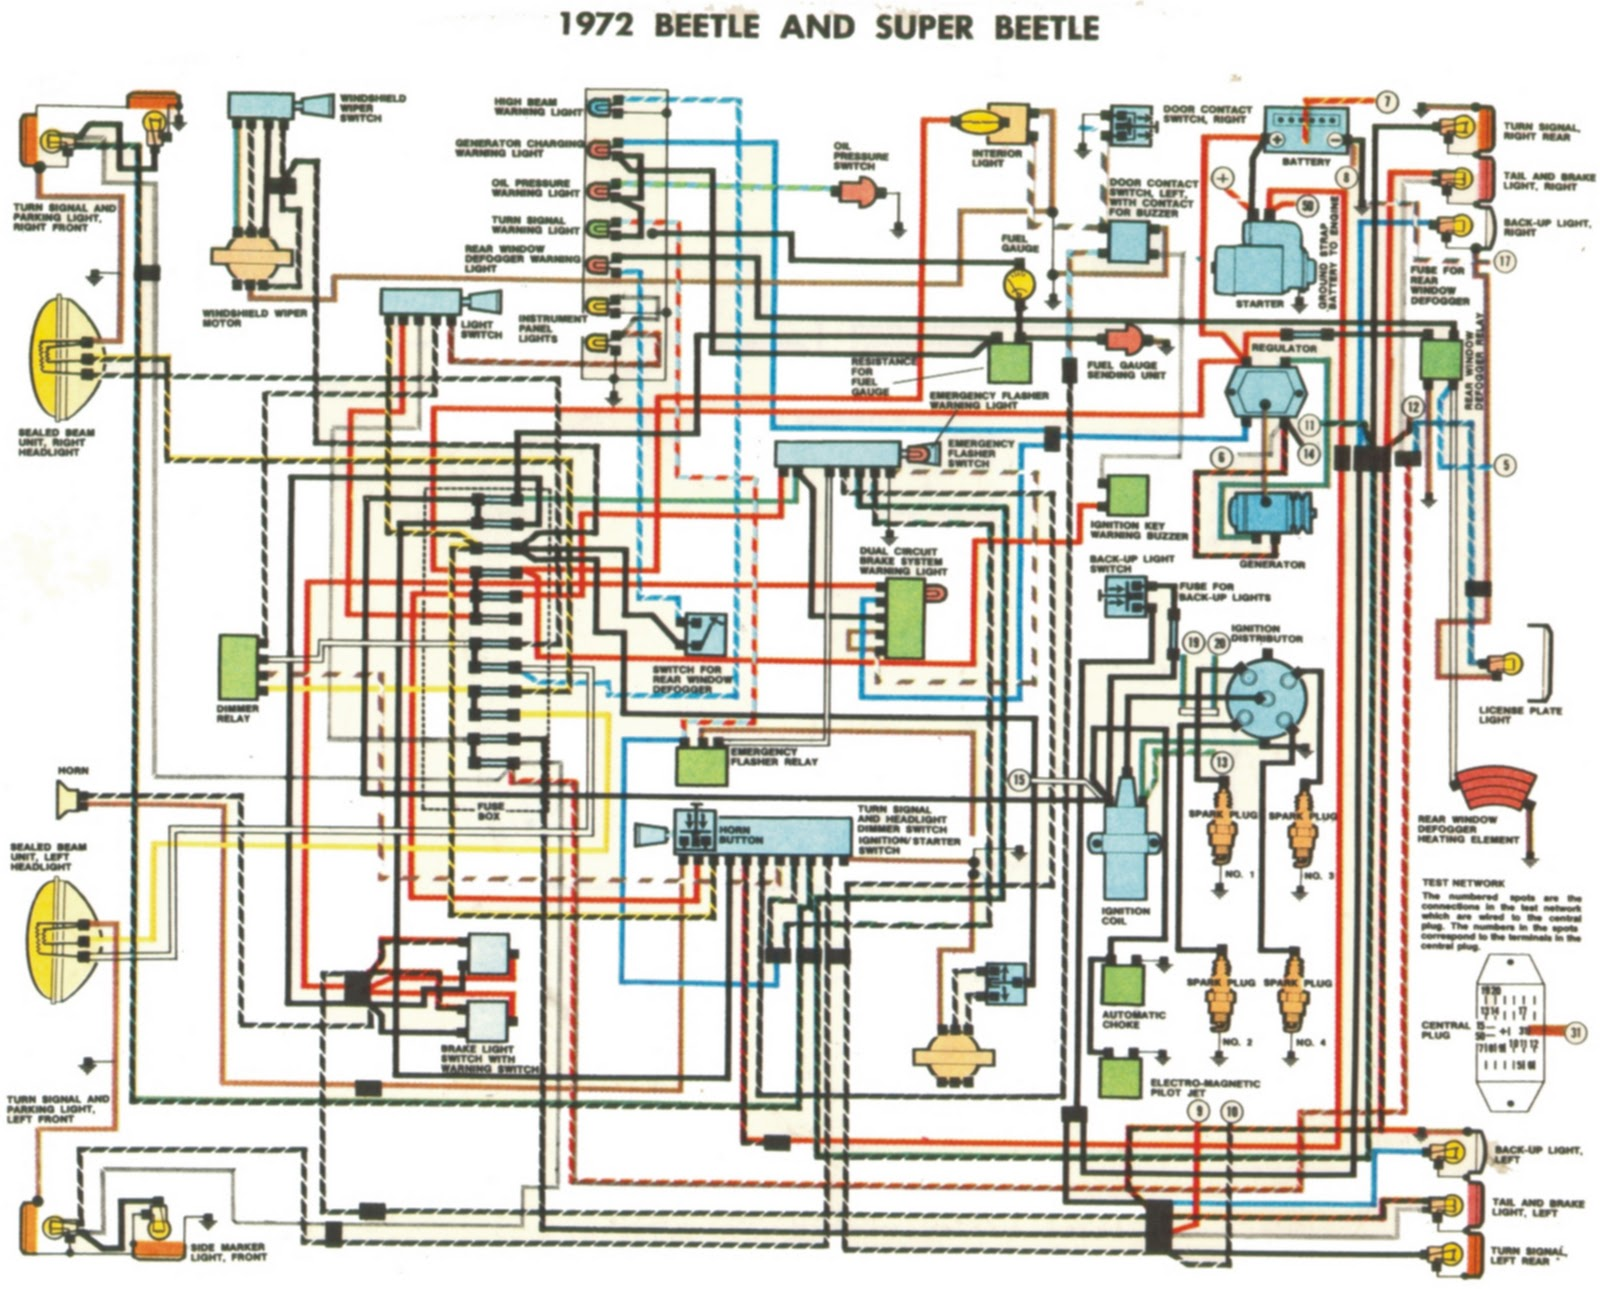 volkswagen wiring diagram wiring diagram 1974 vw super beetle the wiring diagram ignition wiring diagram vw beetle massmedia wiring